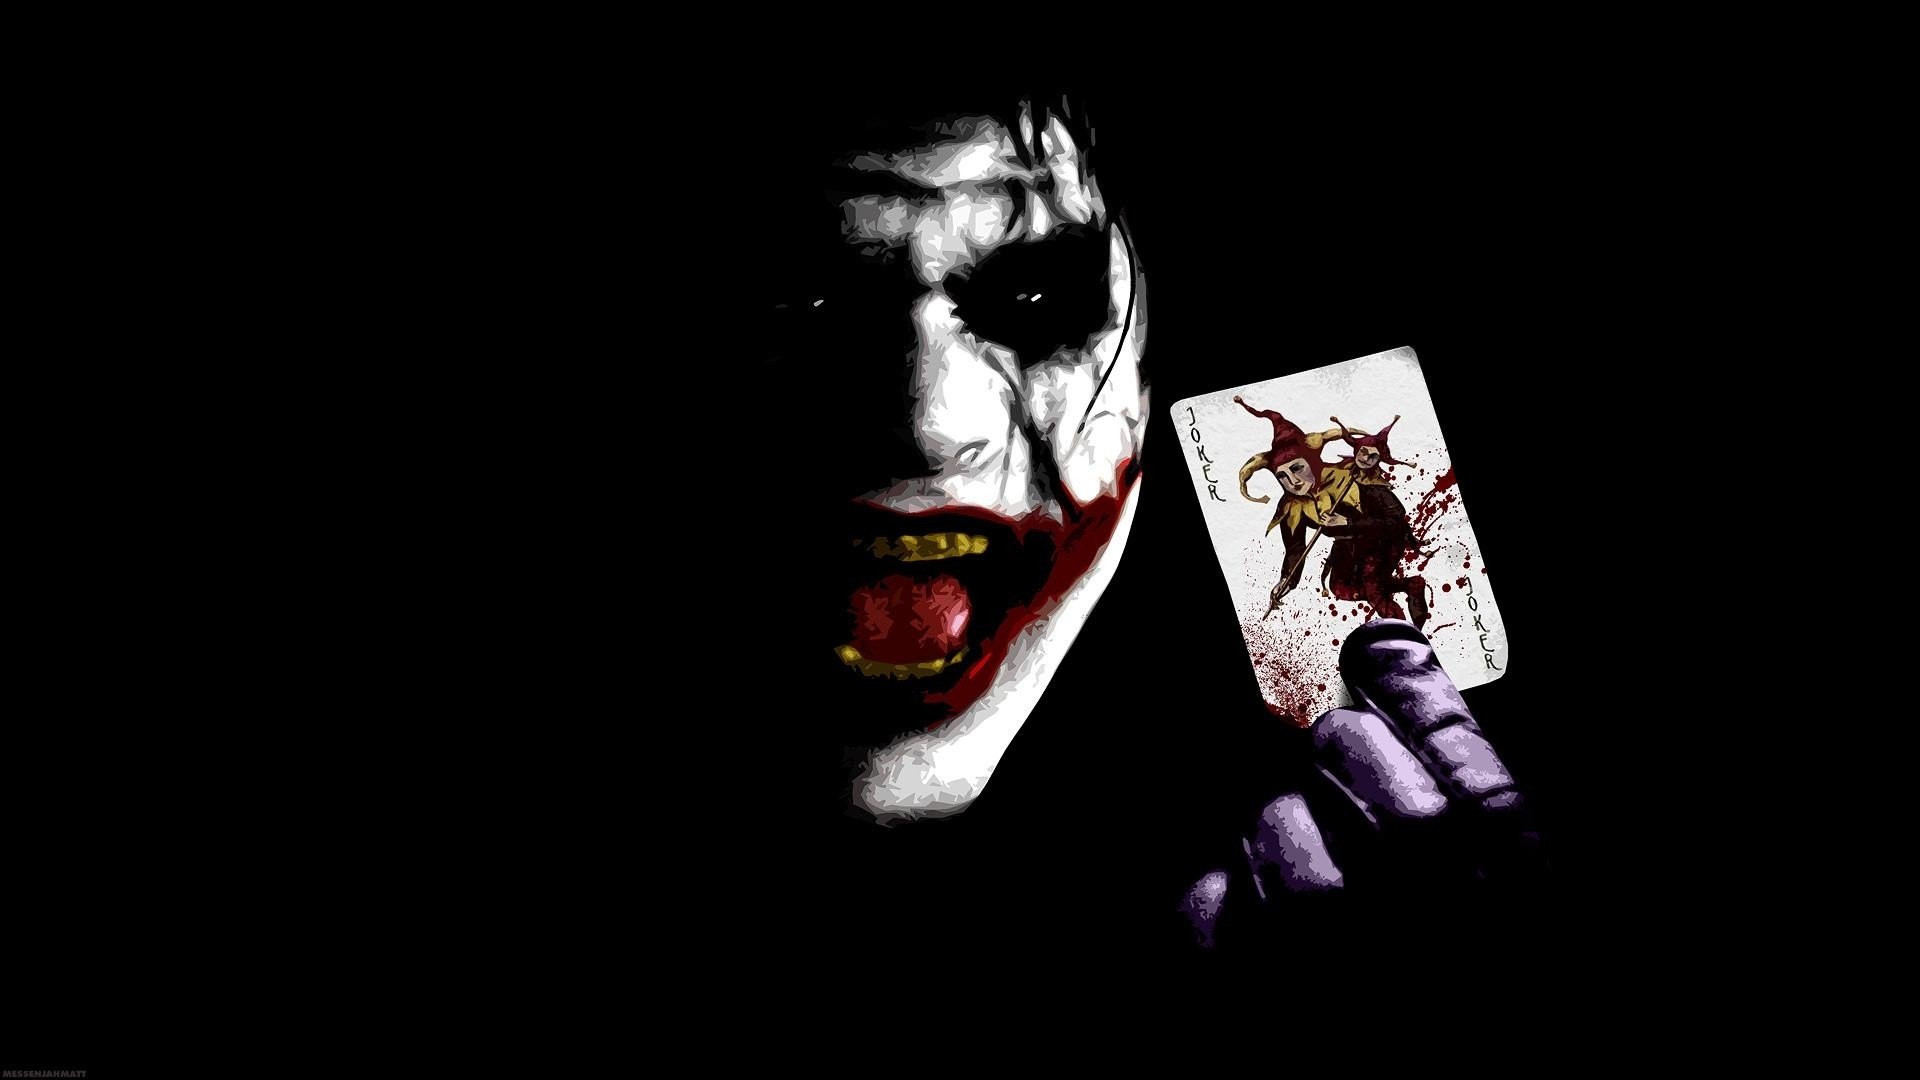 Card Joker Cool Wallpaper Wallpaper WallpaperLepi 1920x1080